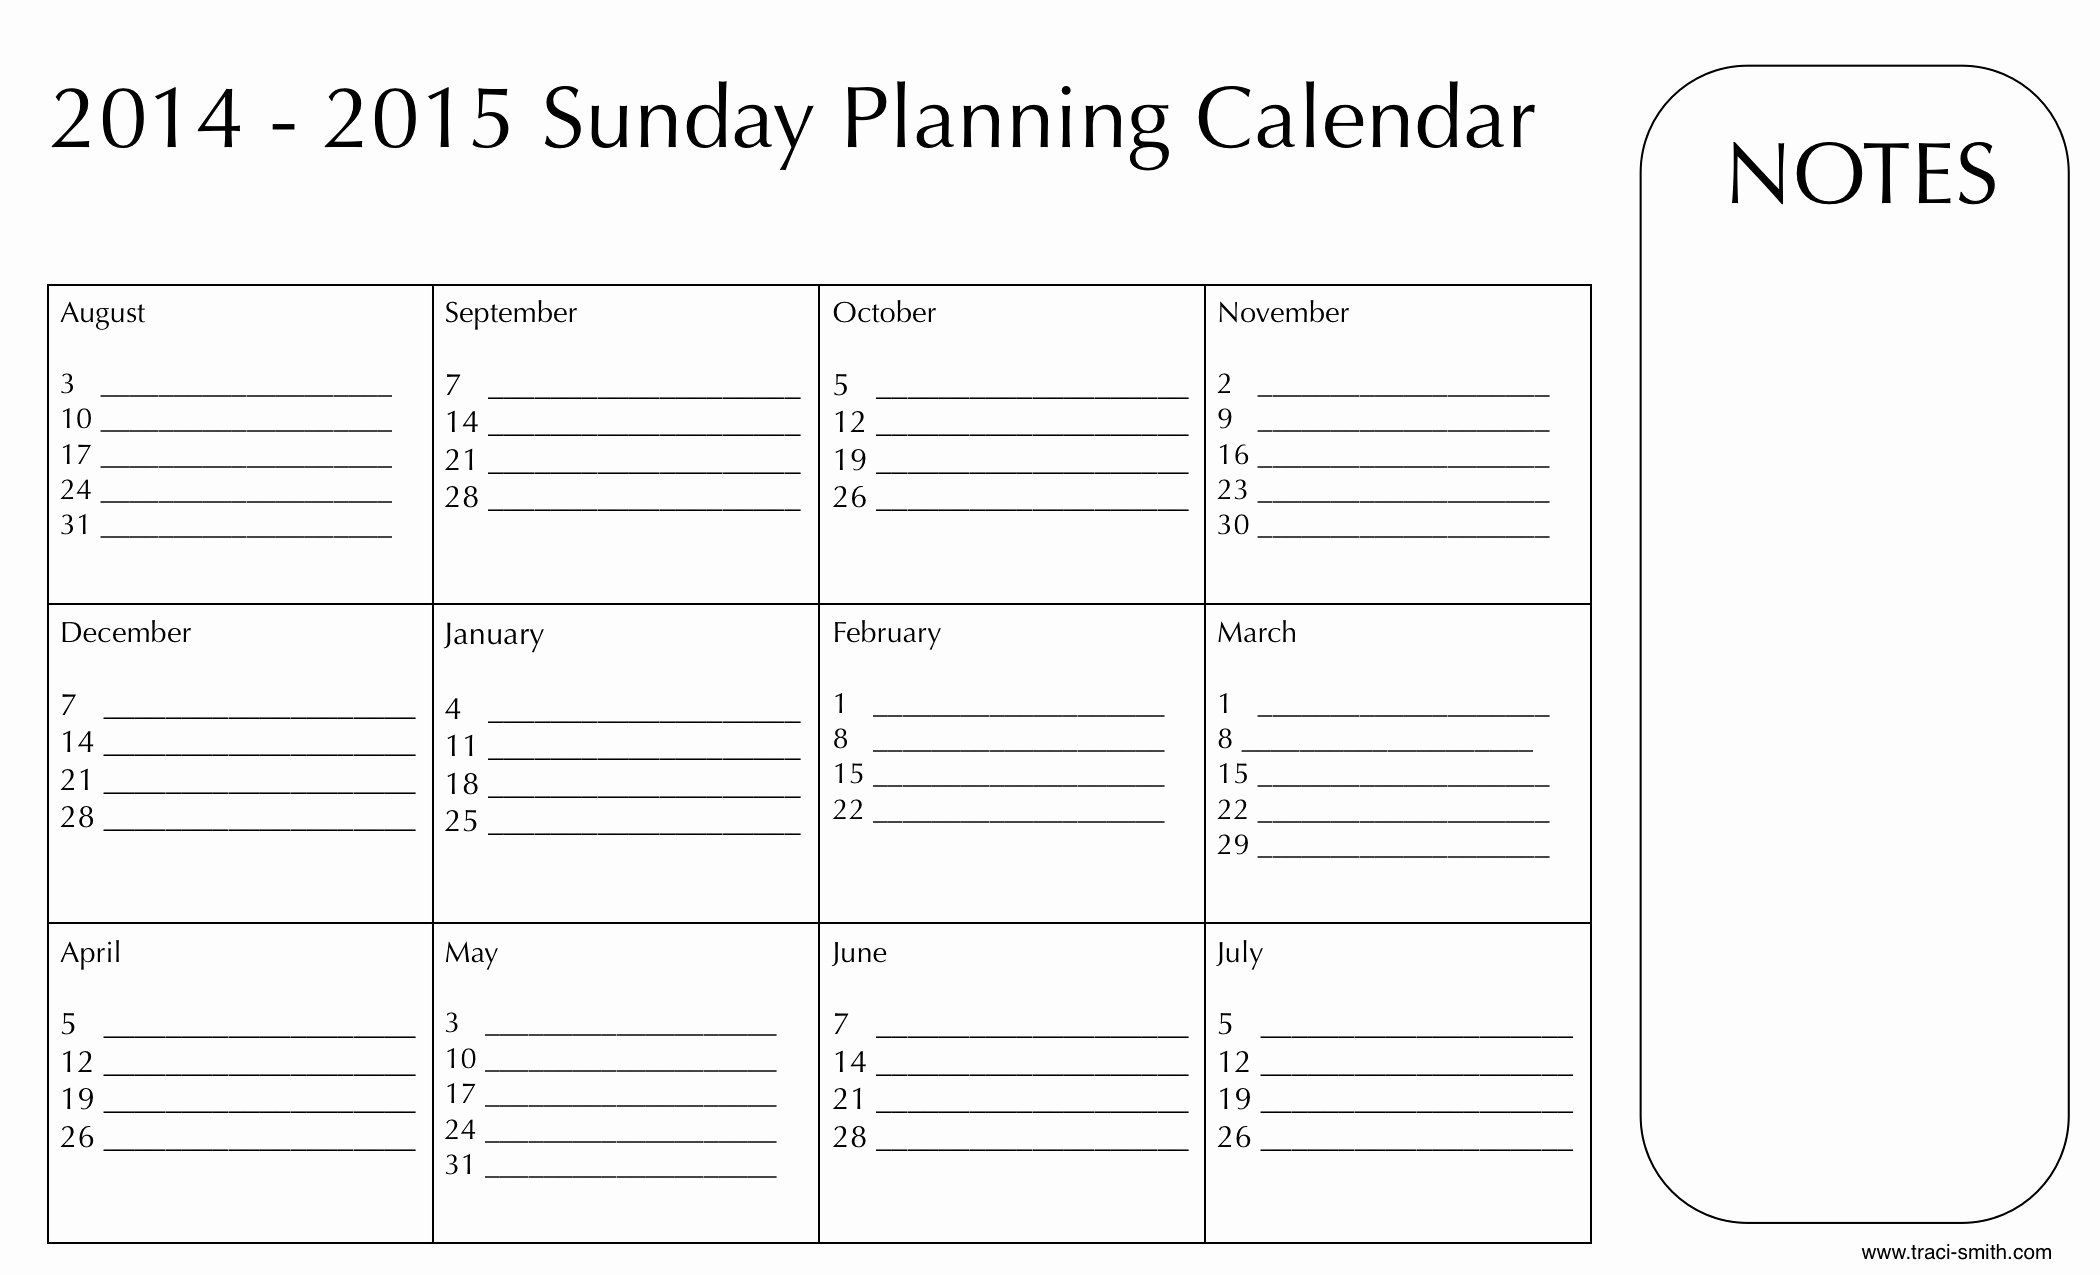 Sunday School Schedule Template Elegant Labor Day Present for You Downloadable Planning Calendars